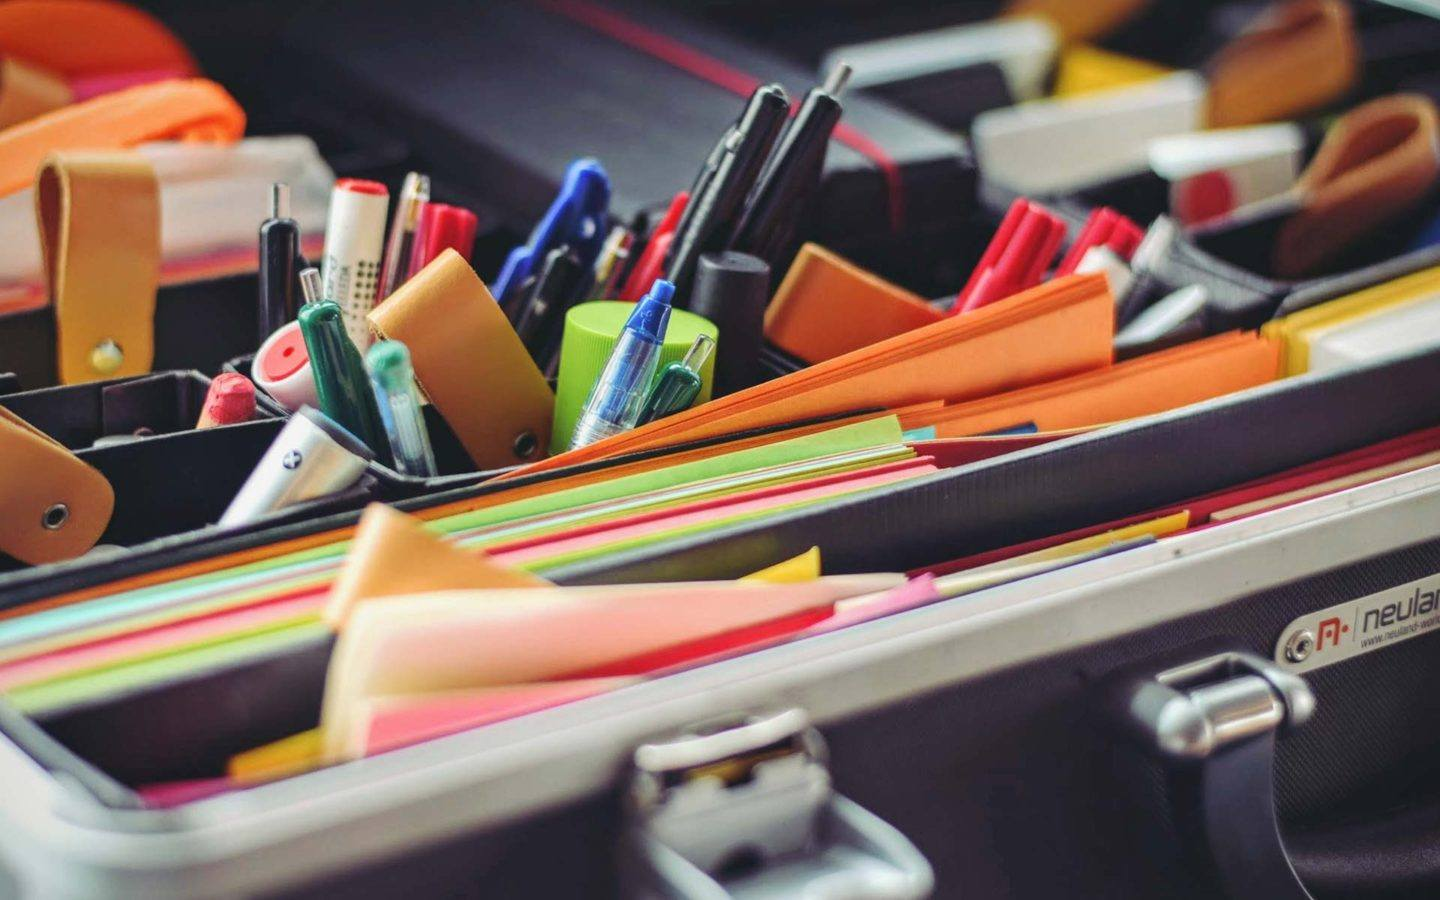 close up of various office stationary items